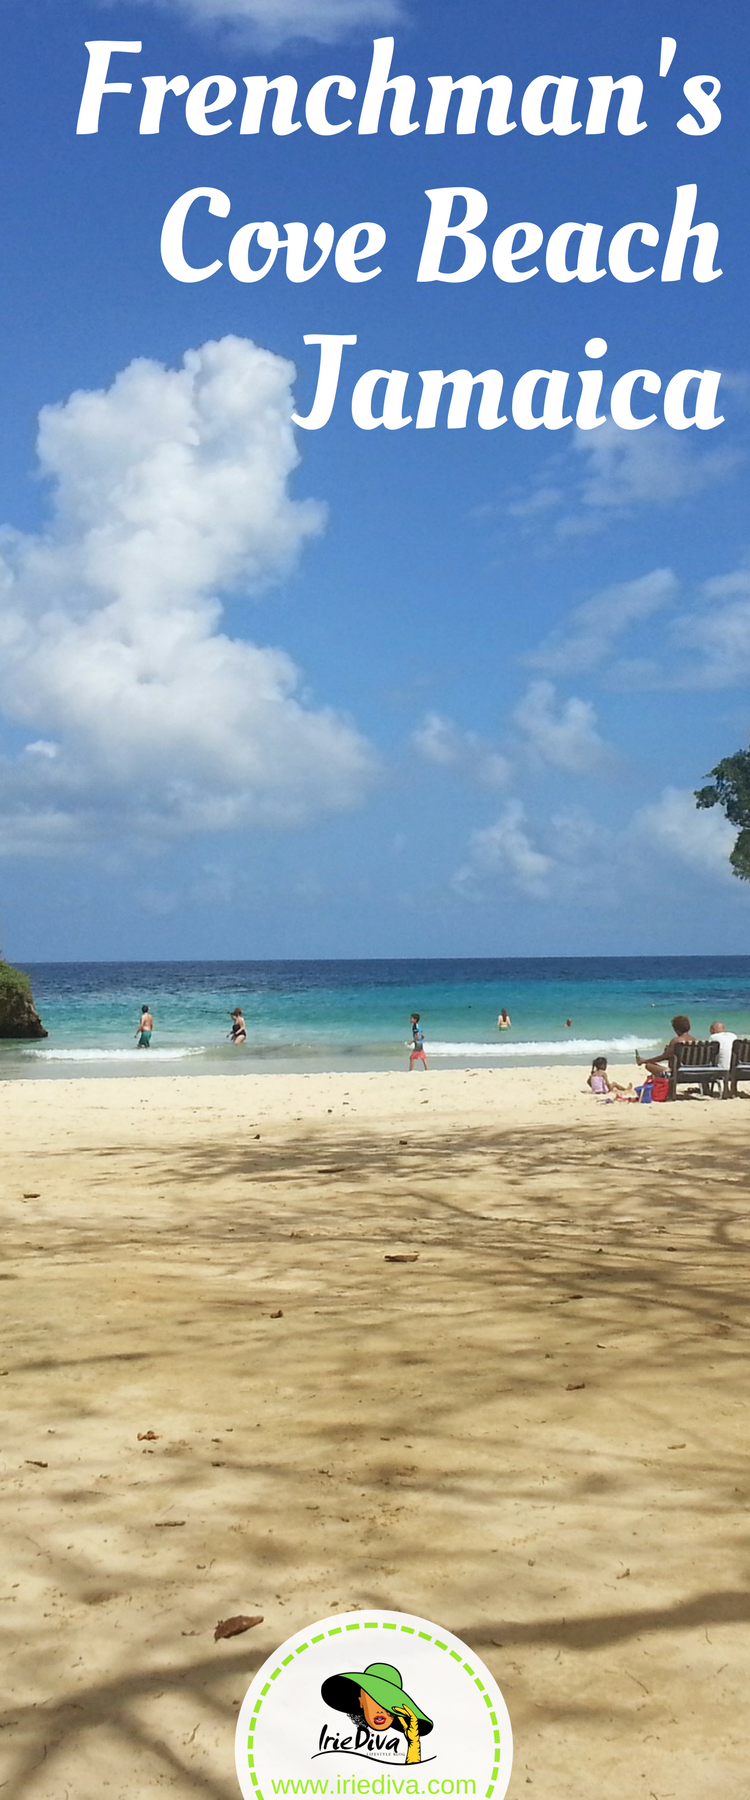 Frenchman's Cove Beach and Resort in Portland Jamaica. Arguably the best beach on the north-east coast.